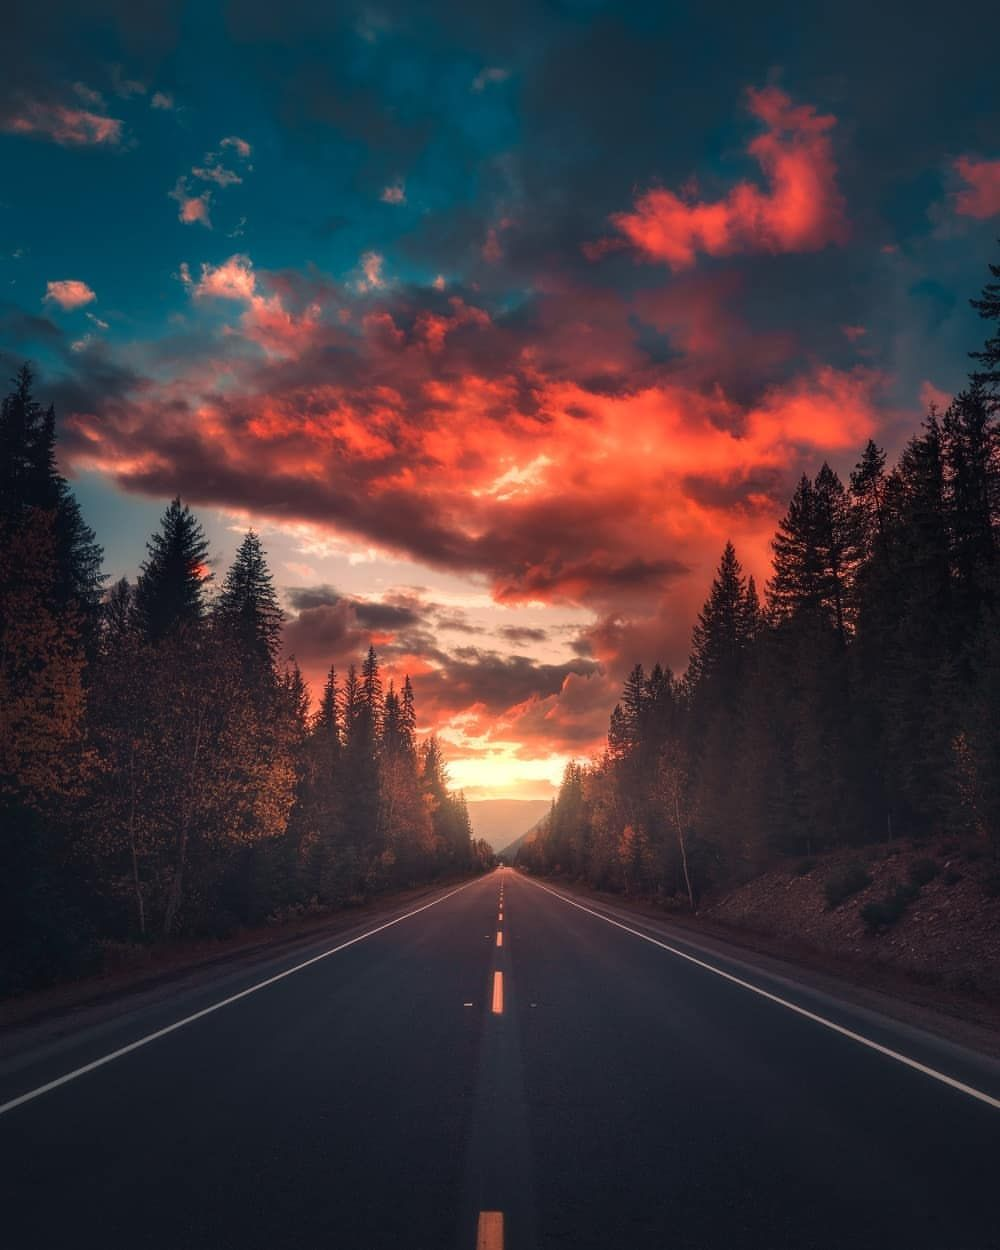 Dreamlike And Moody Landscape Photography By Zach Doehler Landscape Pictures Nature Photography Landscape Photography